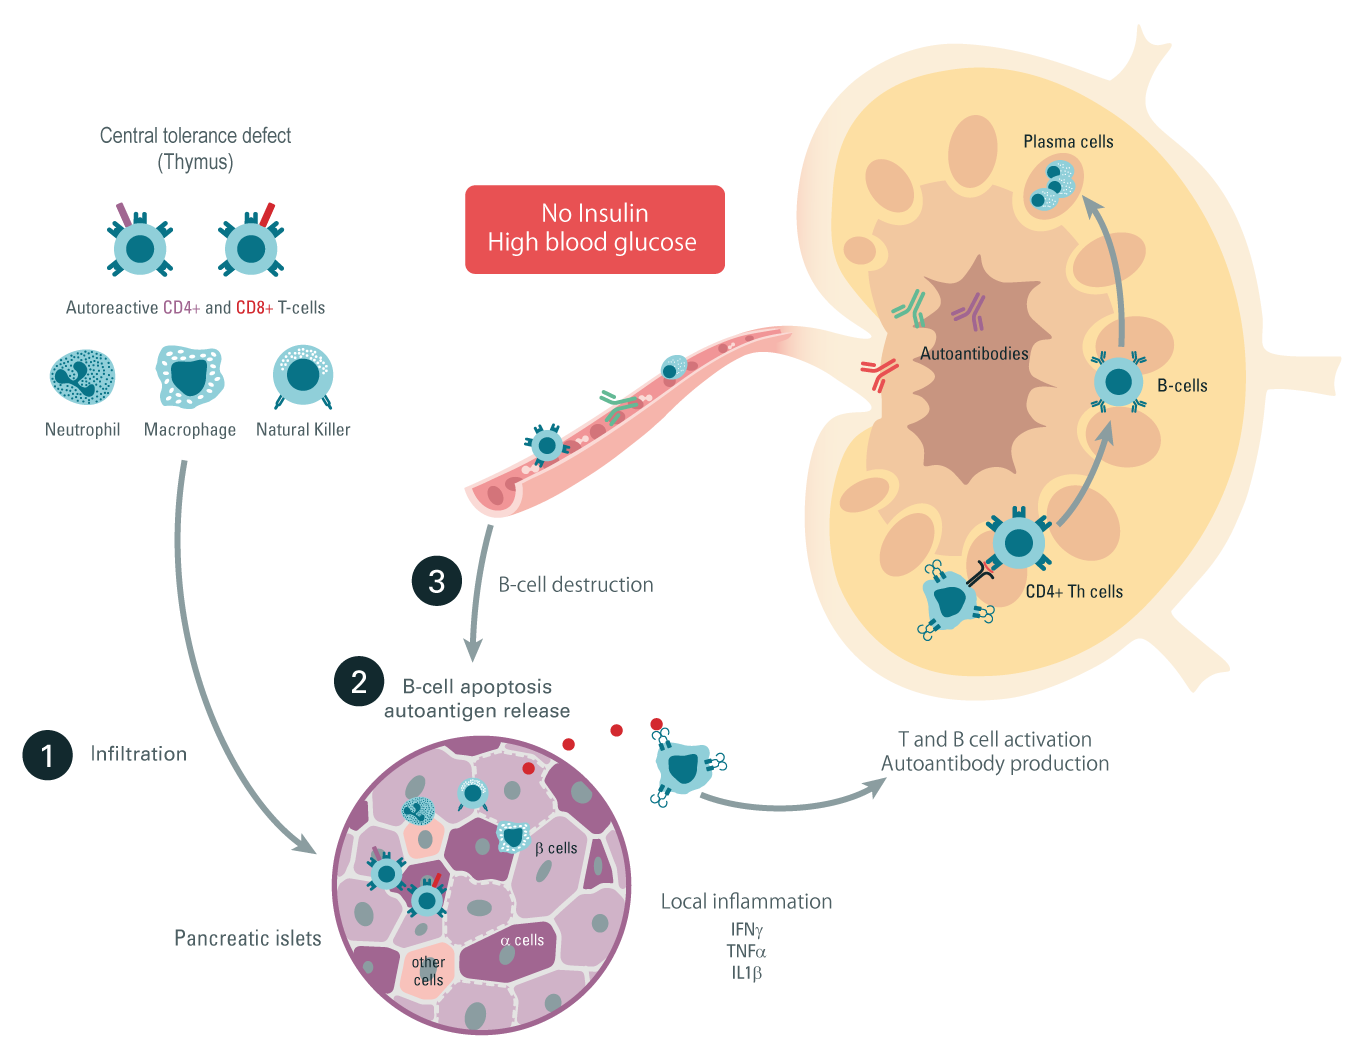 Type 1 diabetes inflammatory pathway